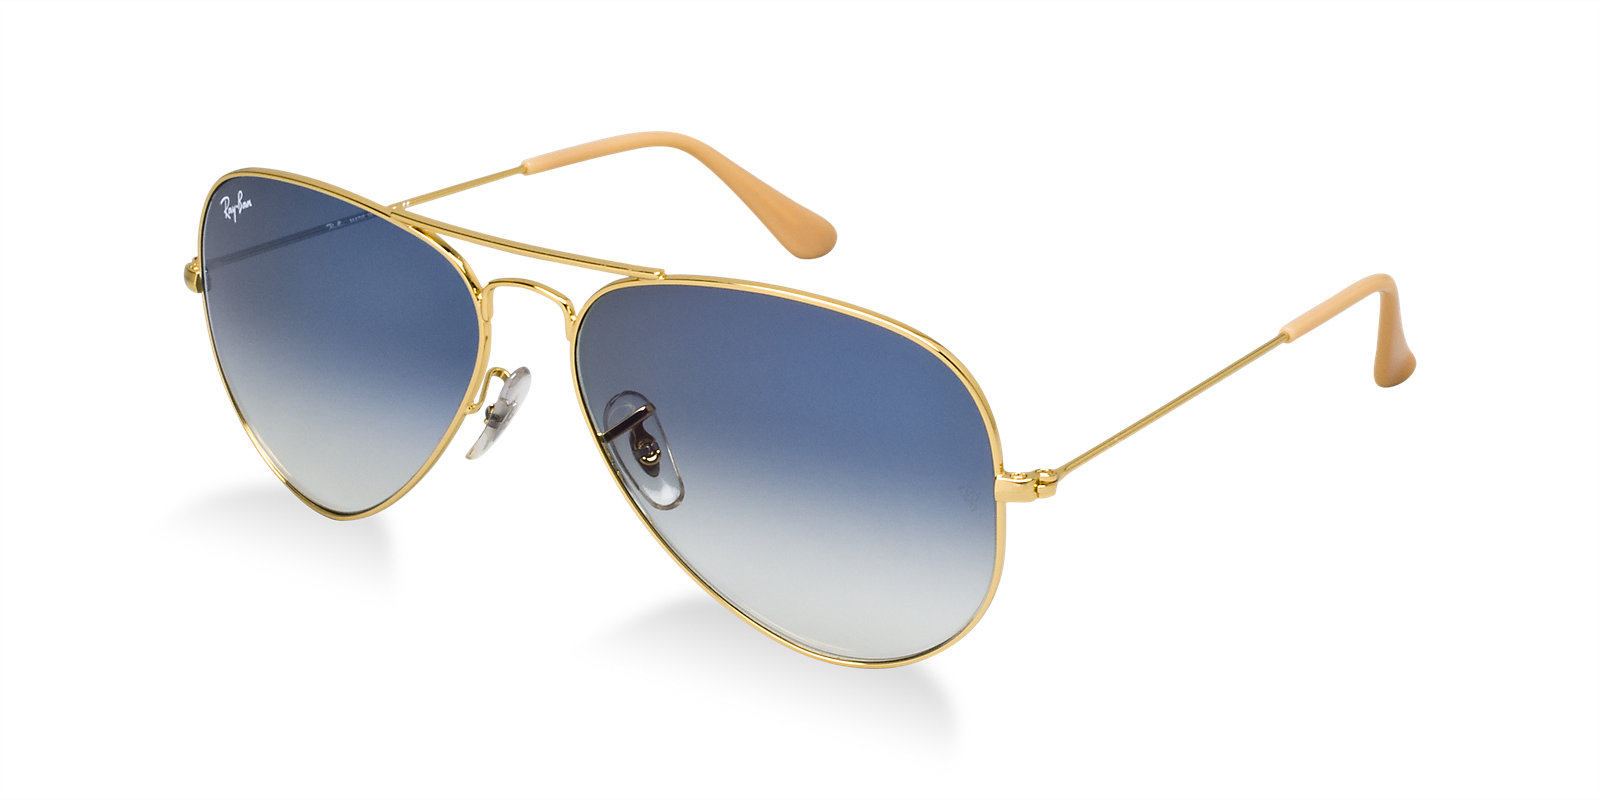 9c4bd863a17ce Previous  Next. Previous  Next. RAY-BAN RB3025 001 3F GOLD BLUE AVIATOR  SUNGLASSES